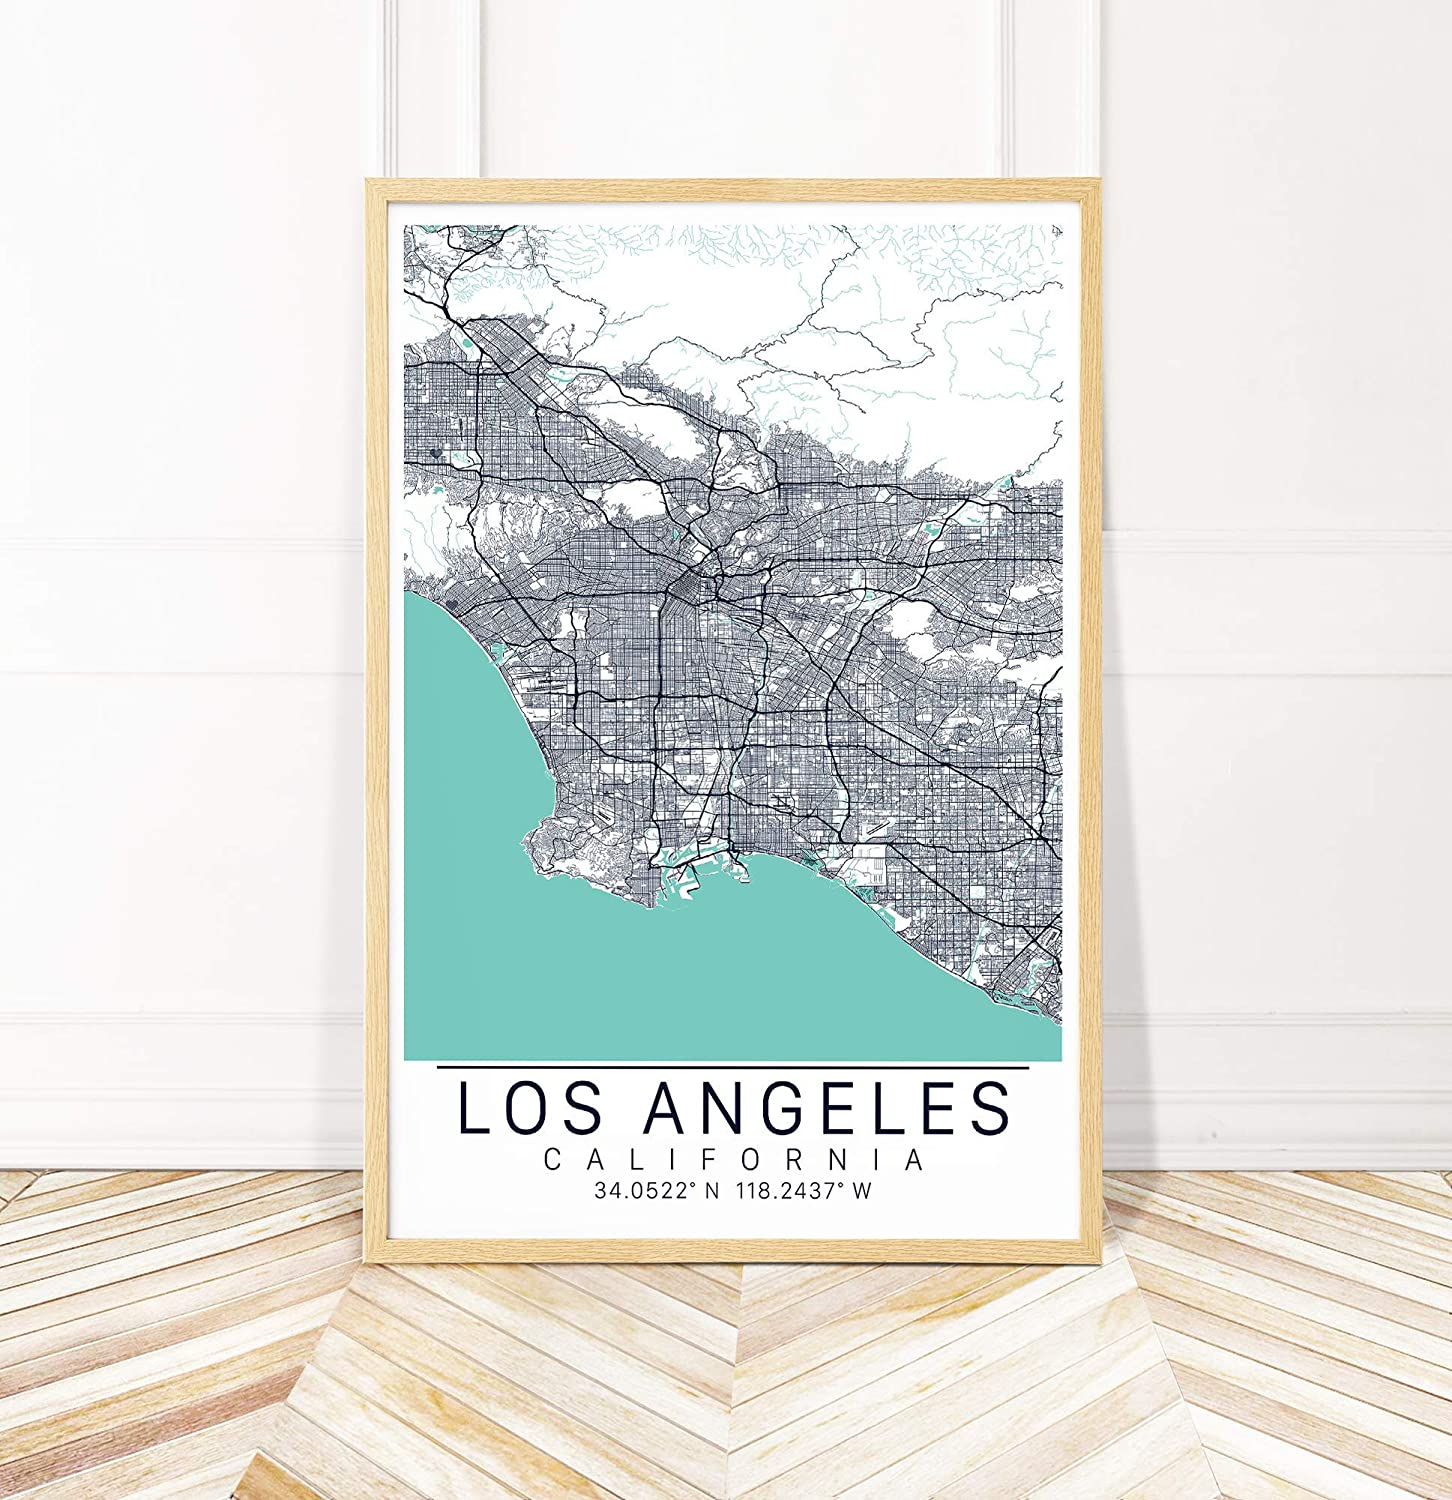 Amazon.com: Los Angeles Map City Art- Map of LA with ... on city of kenner map, city of lone tree map, city of redwood city map, city of norco map, city of san buenaventura map, city of alabama map, city of joshua tree map, city of yuba city map, city of las vegas area map, city of louisiana map, city of youngstown map, city of lexington map, city of wisconsin map, city of alamo heights map, city of arizona state, city of oak park map, city of plant city map, city of oklahoma map, city md map, city of brooklyn map,